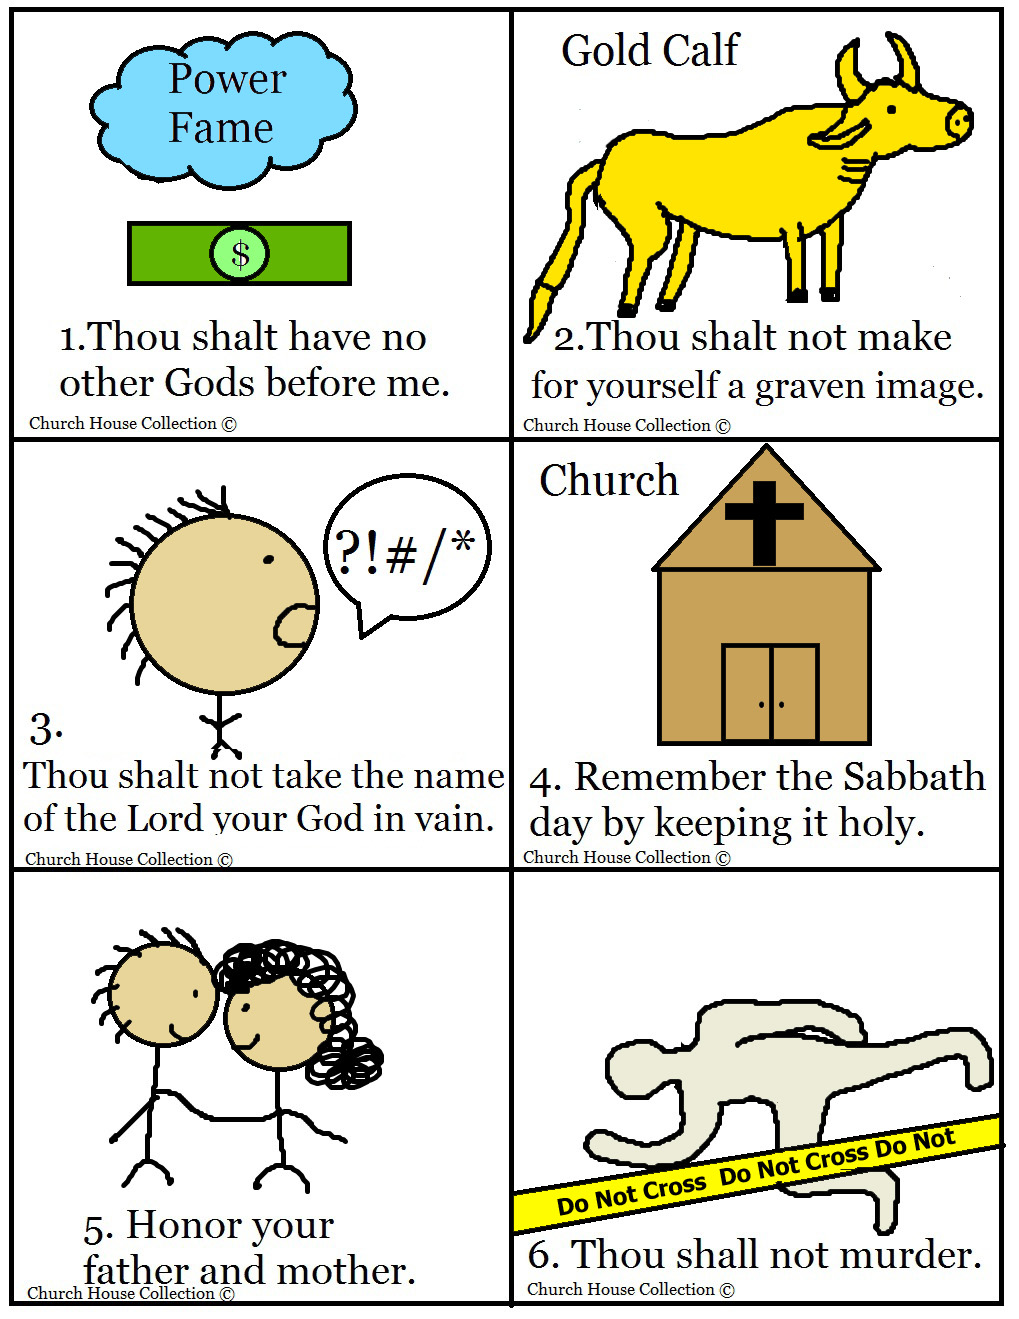 Church House Collection Blog: 10 Commandments Bible Matching Game (Printable)